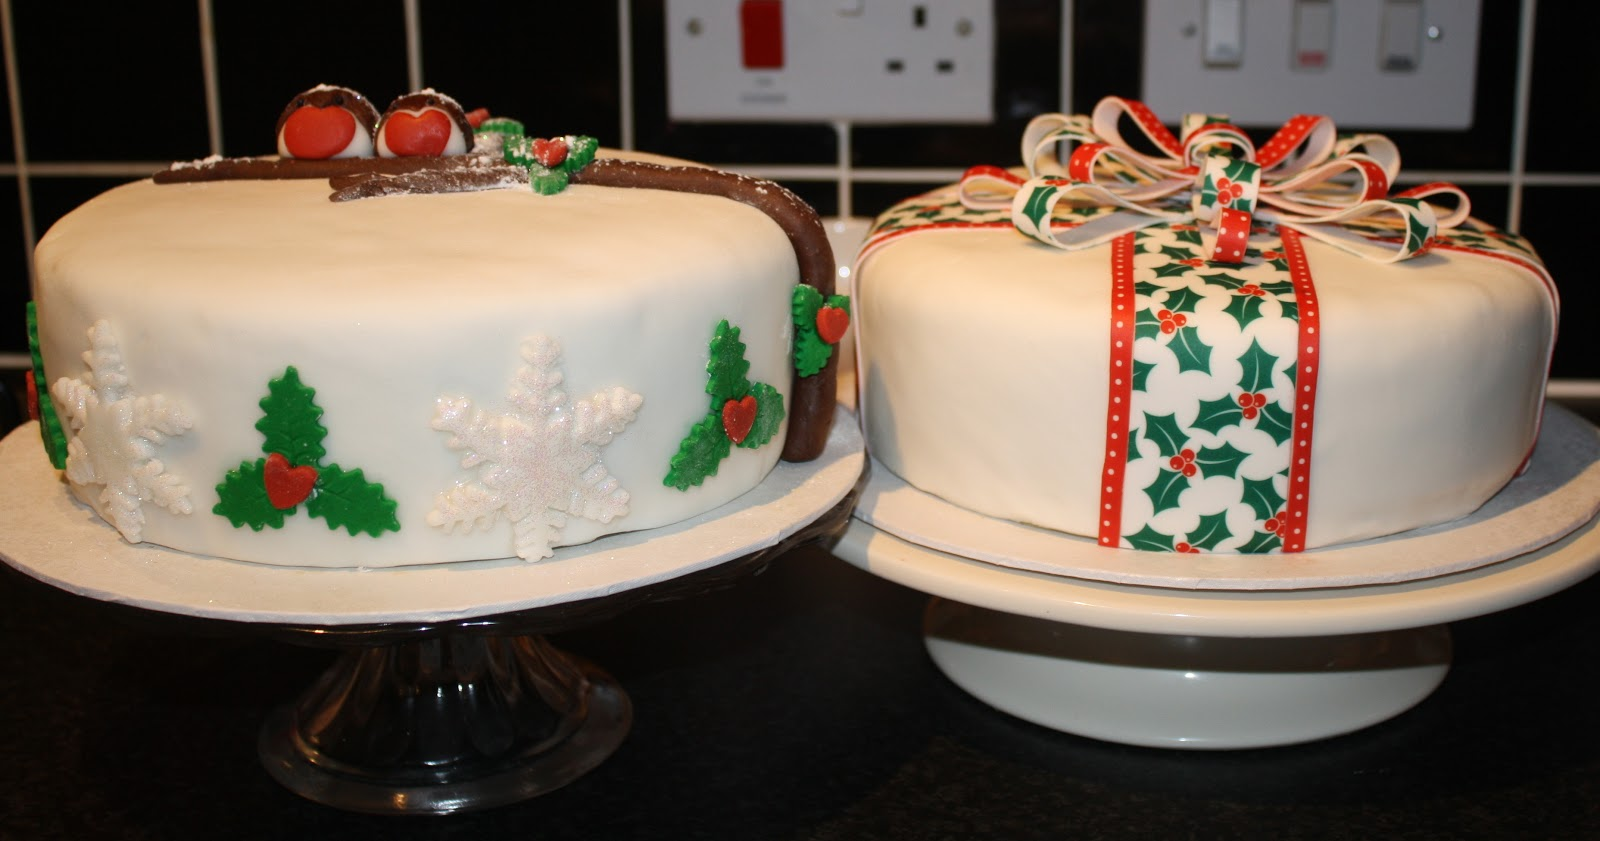 Images Of Christmas Cake Decorations : a million dresses UK Fashion and Lifestyle Blog: Sunday ...